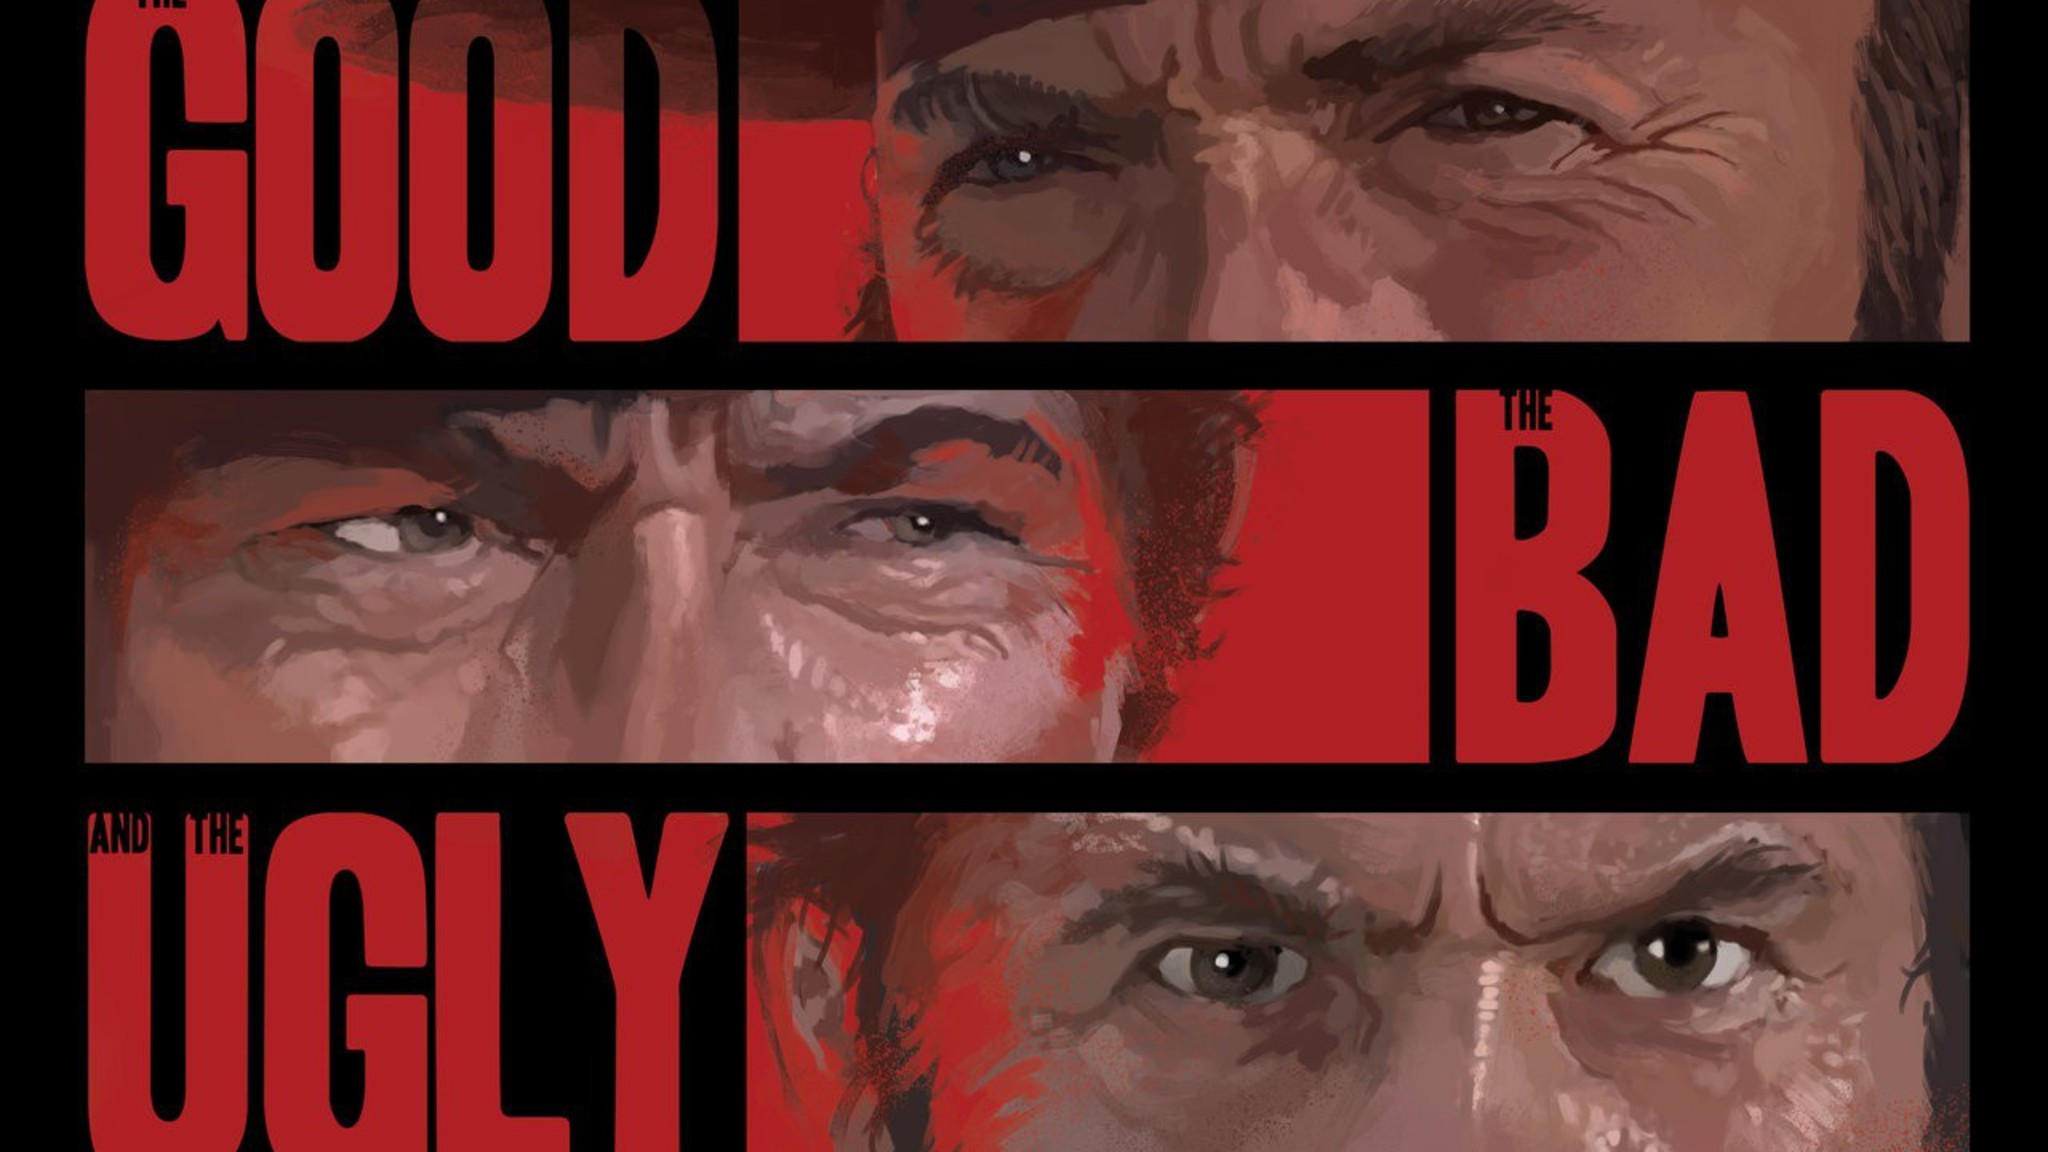 Eastwood Western The Good Bad And Ugly Wallpaper